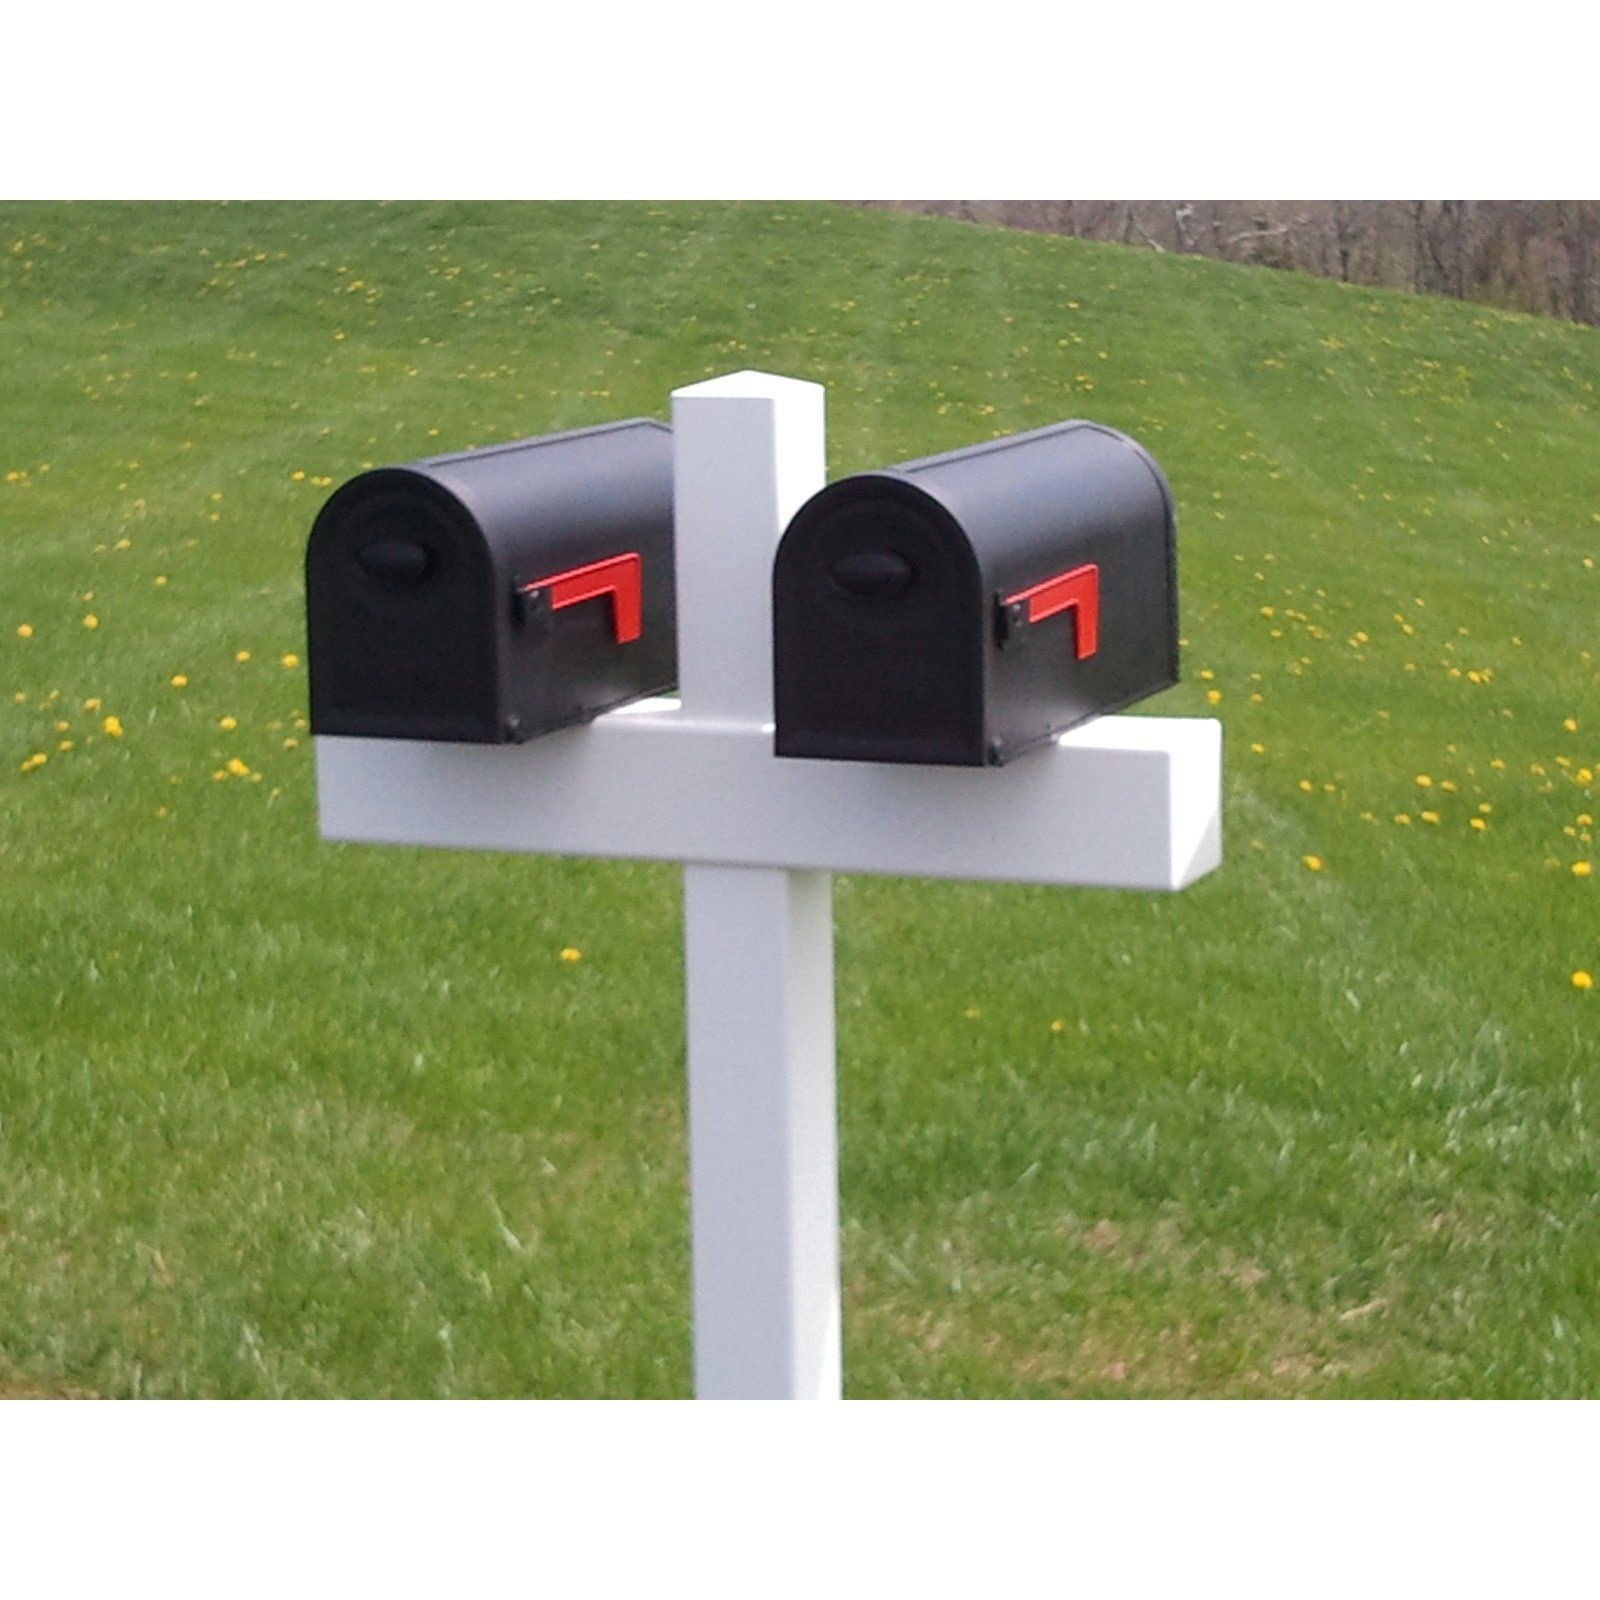 Cook Products Handy Double Mailbox Post Double Mailbox Post Mailbox Post Diy Mailbox